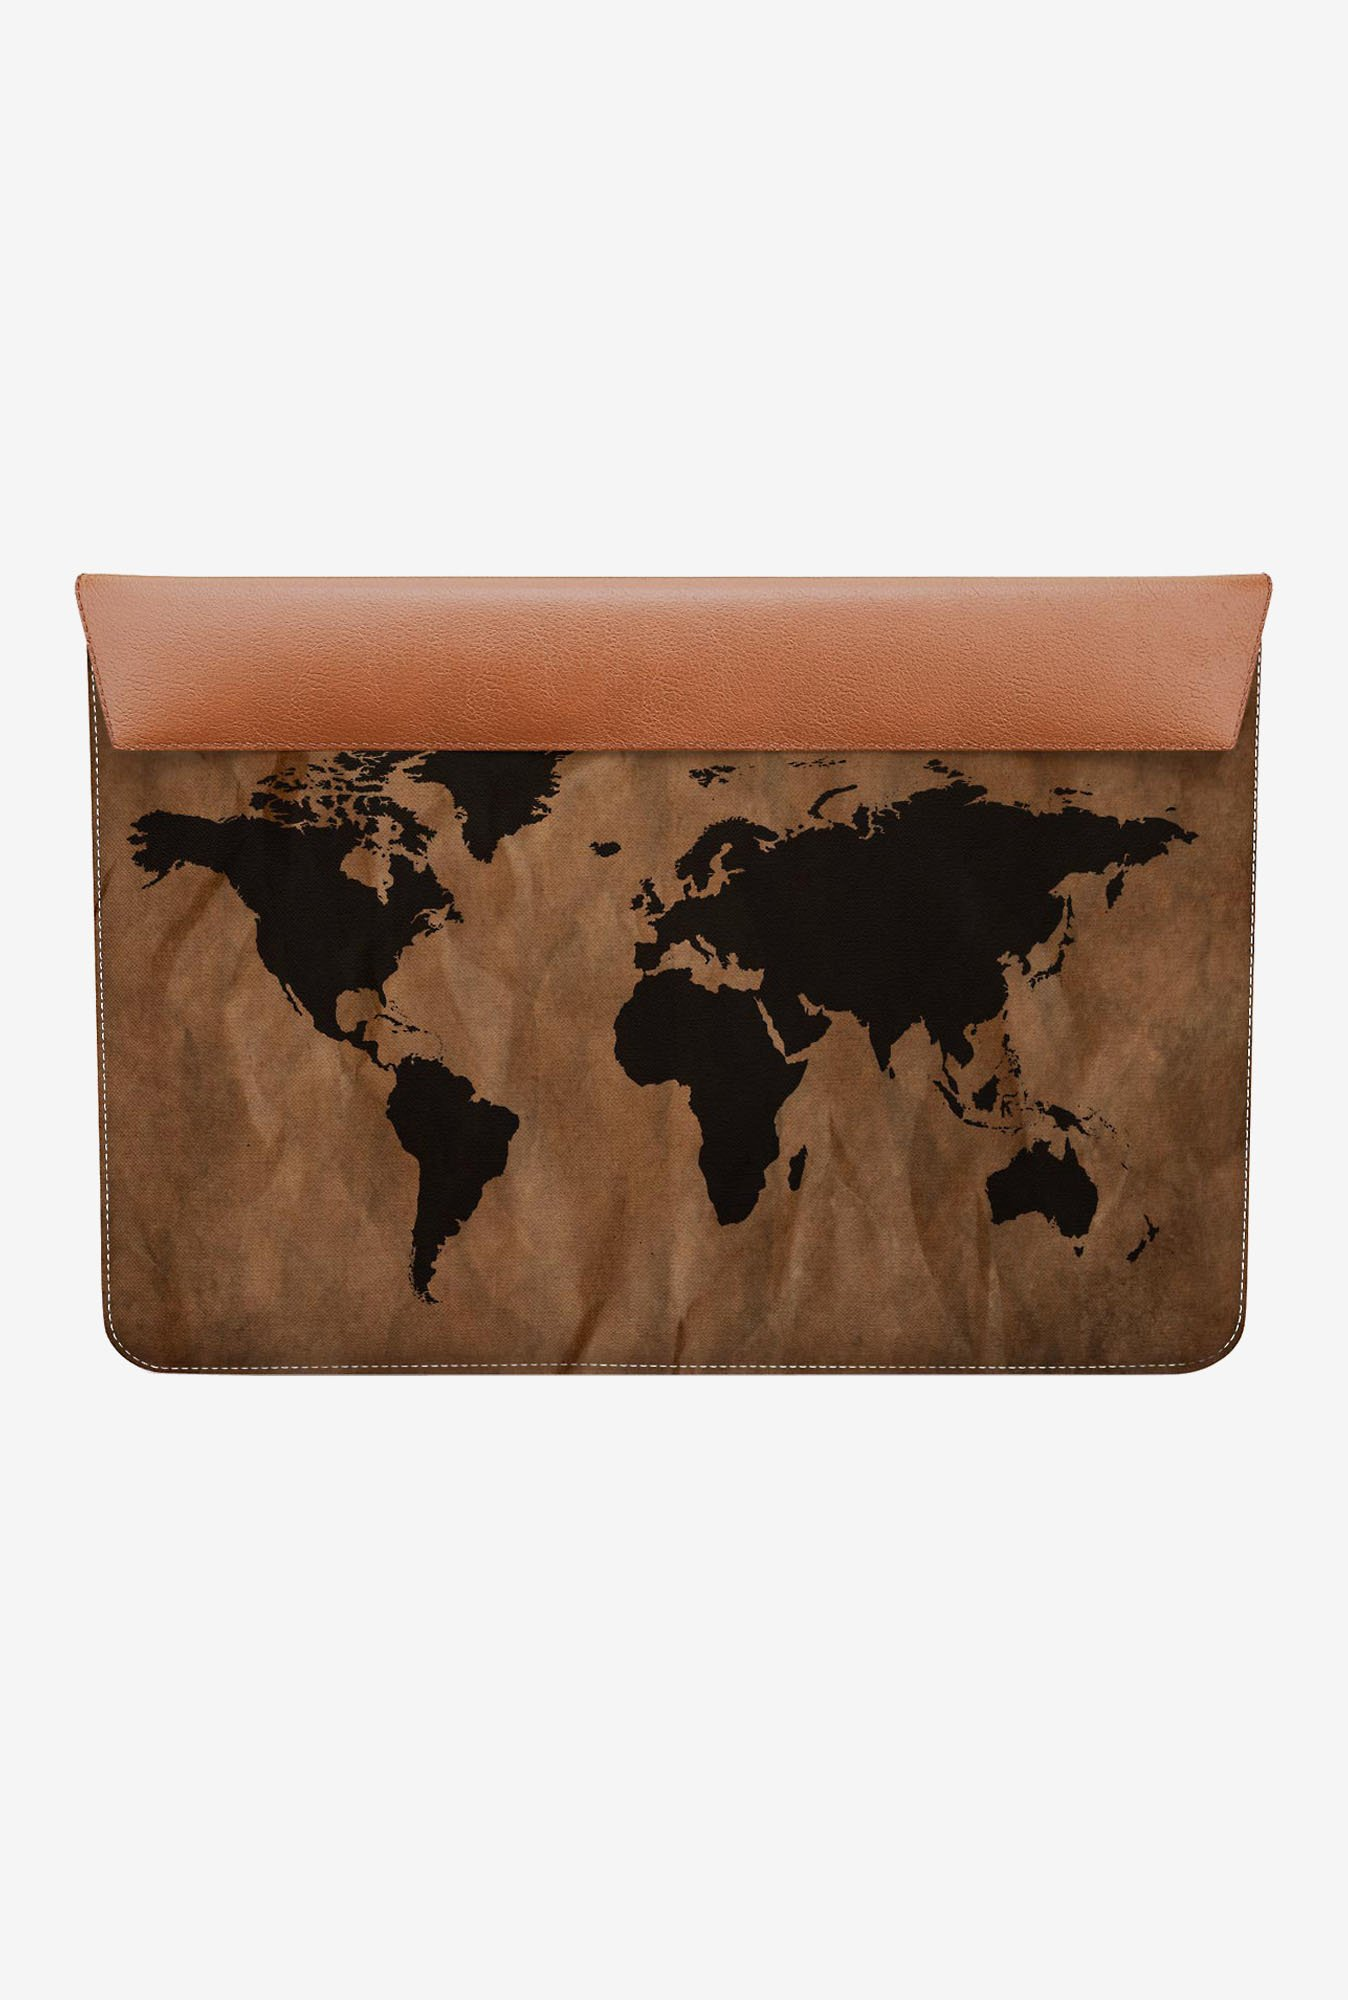 DailyObjects World Map MacBook Pro 13 Envelope Sleeve